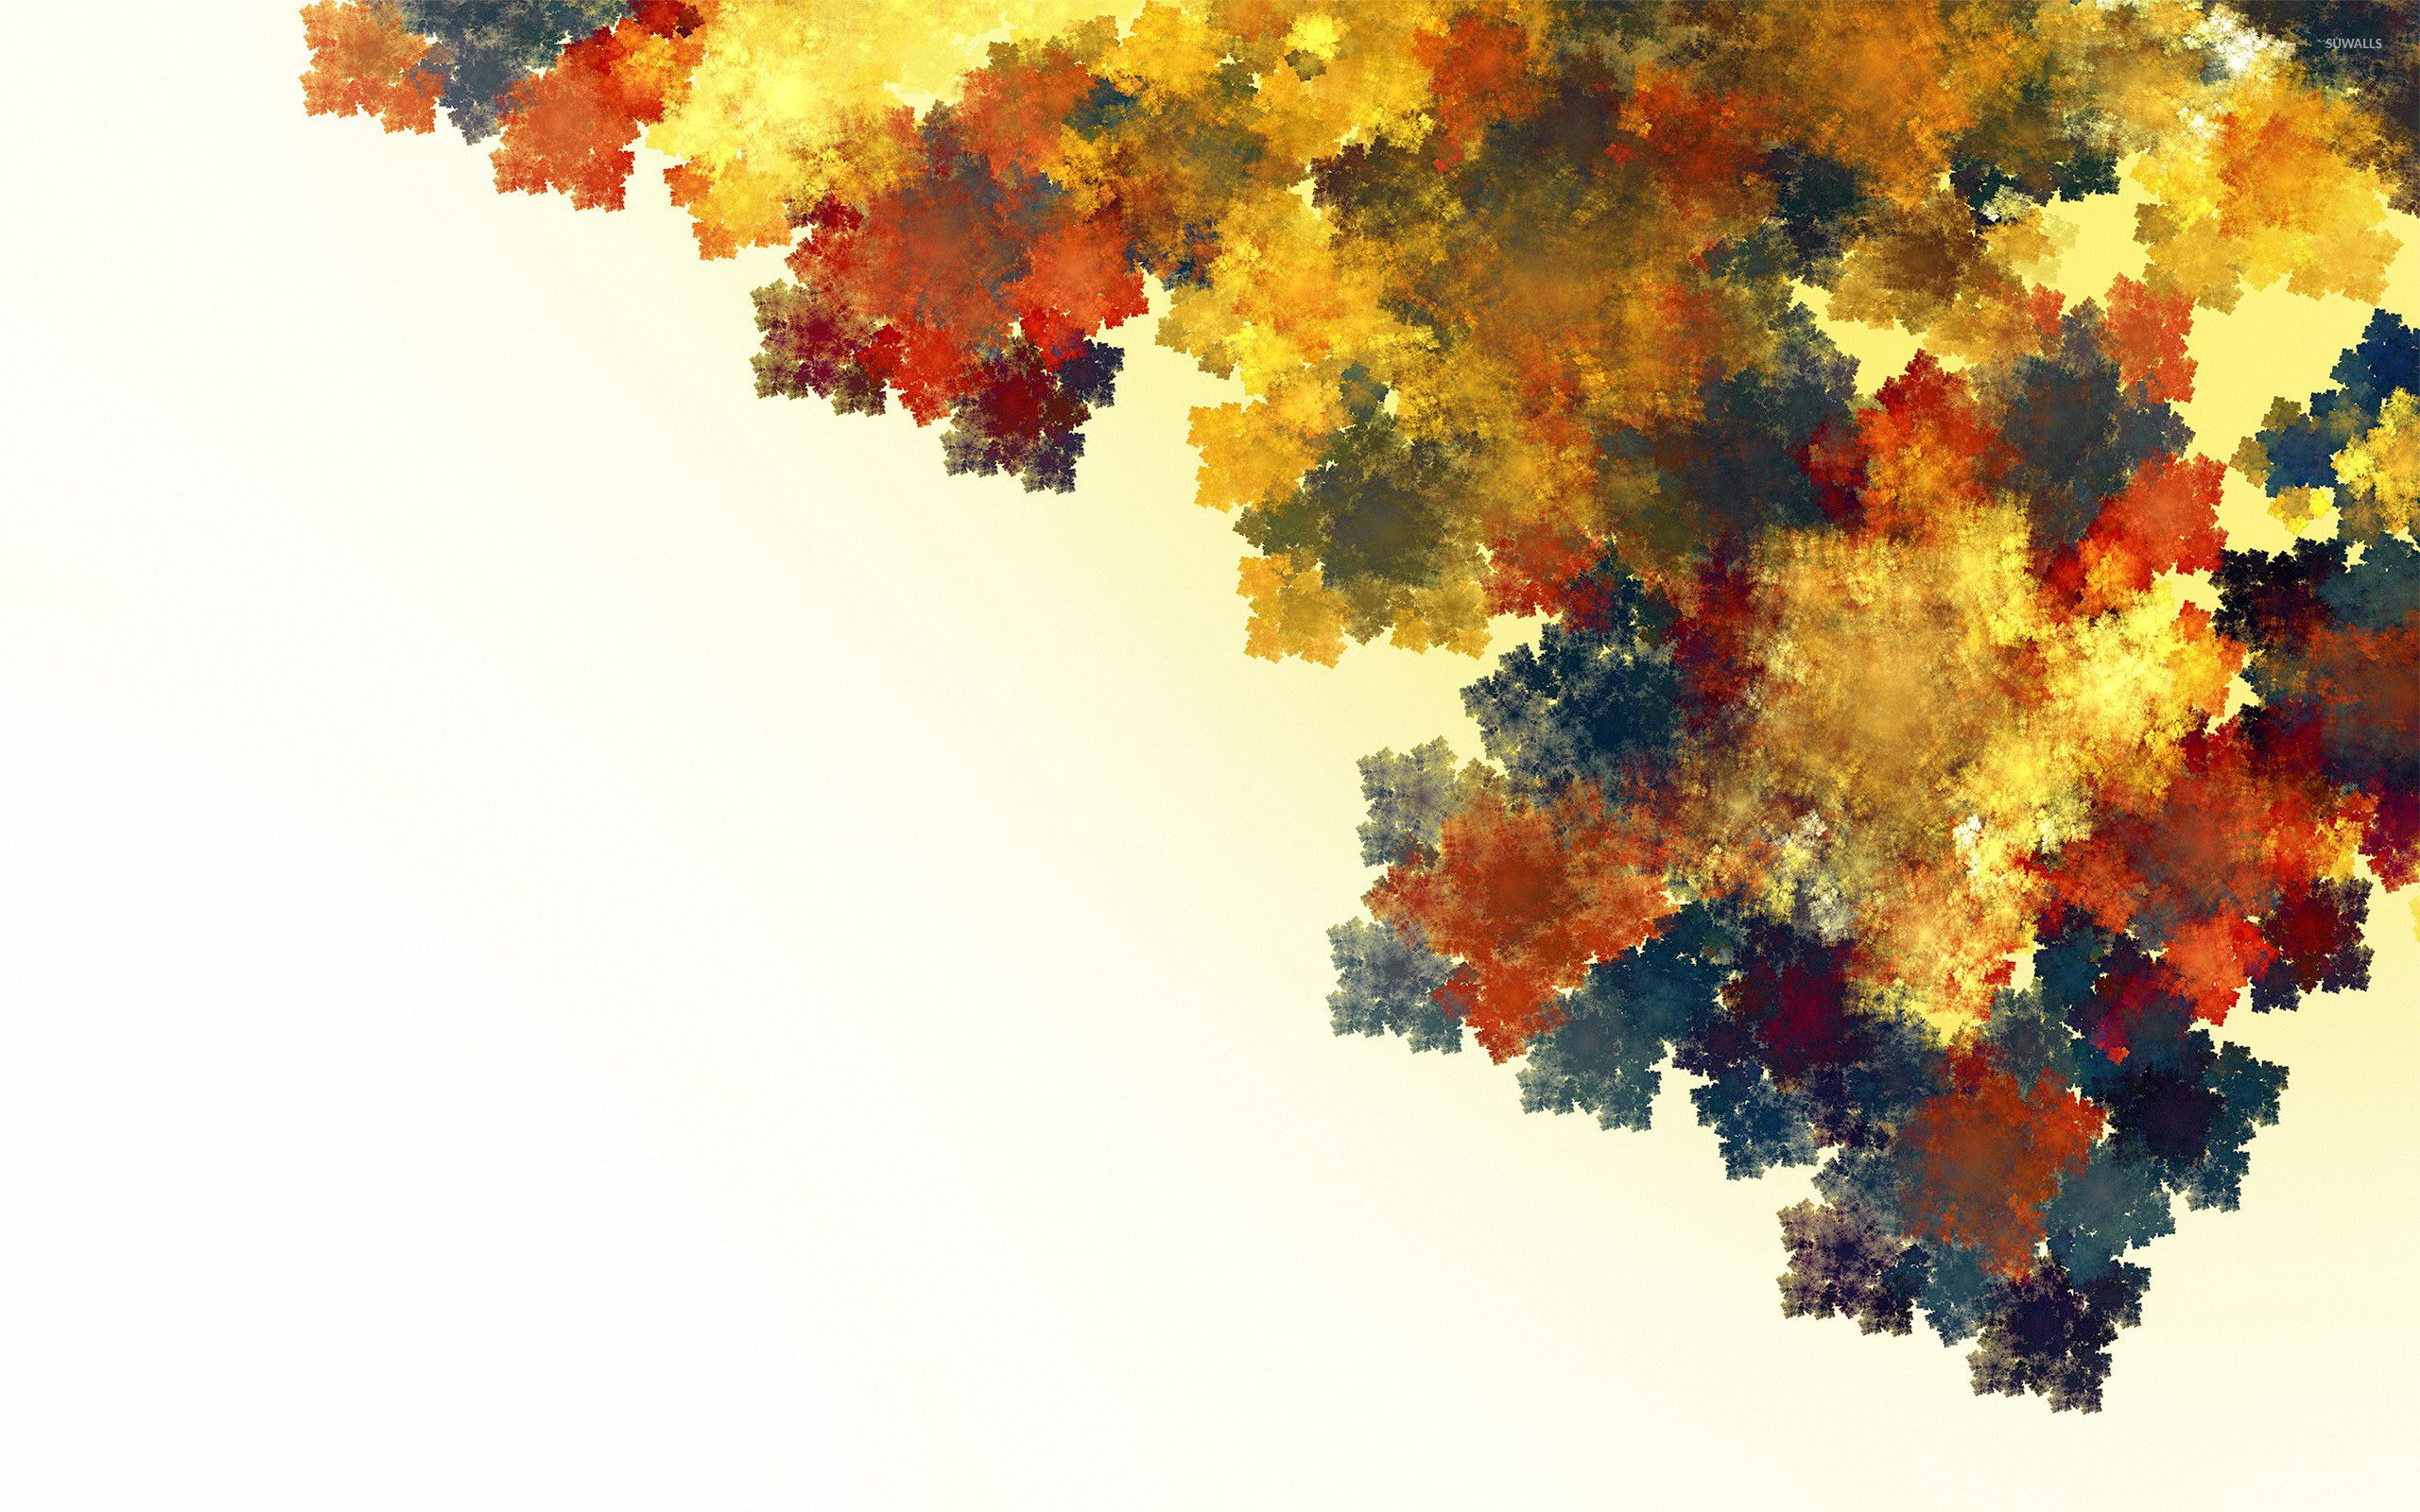 2560x1600 Autumn leaves wallpaper - Abstract wallpapers - #8220